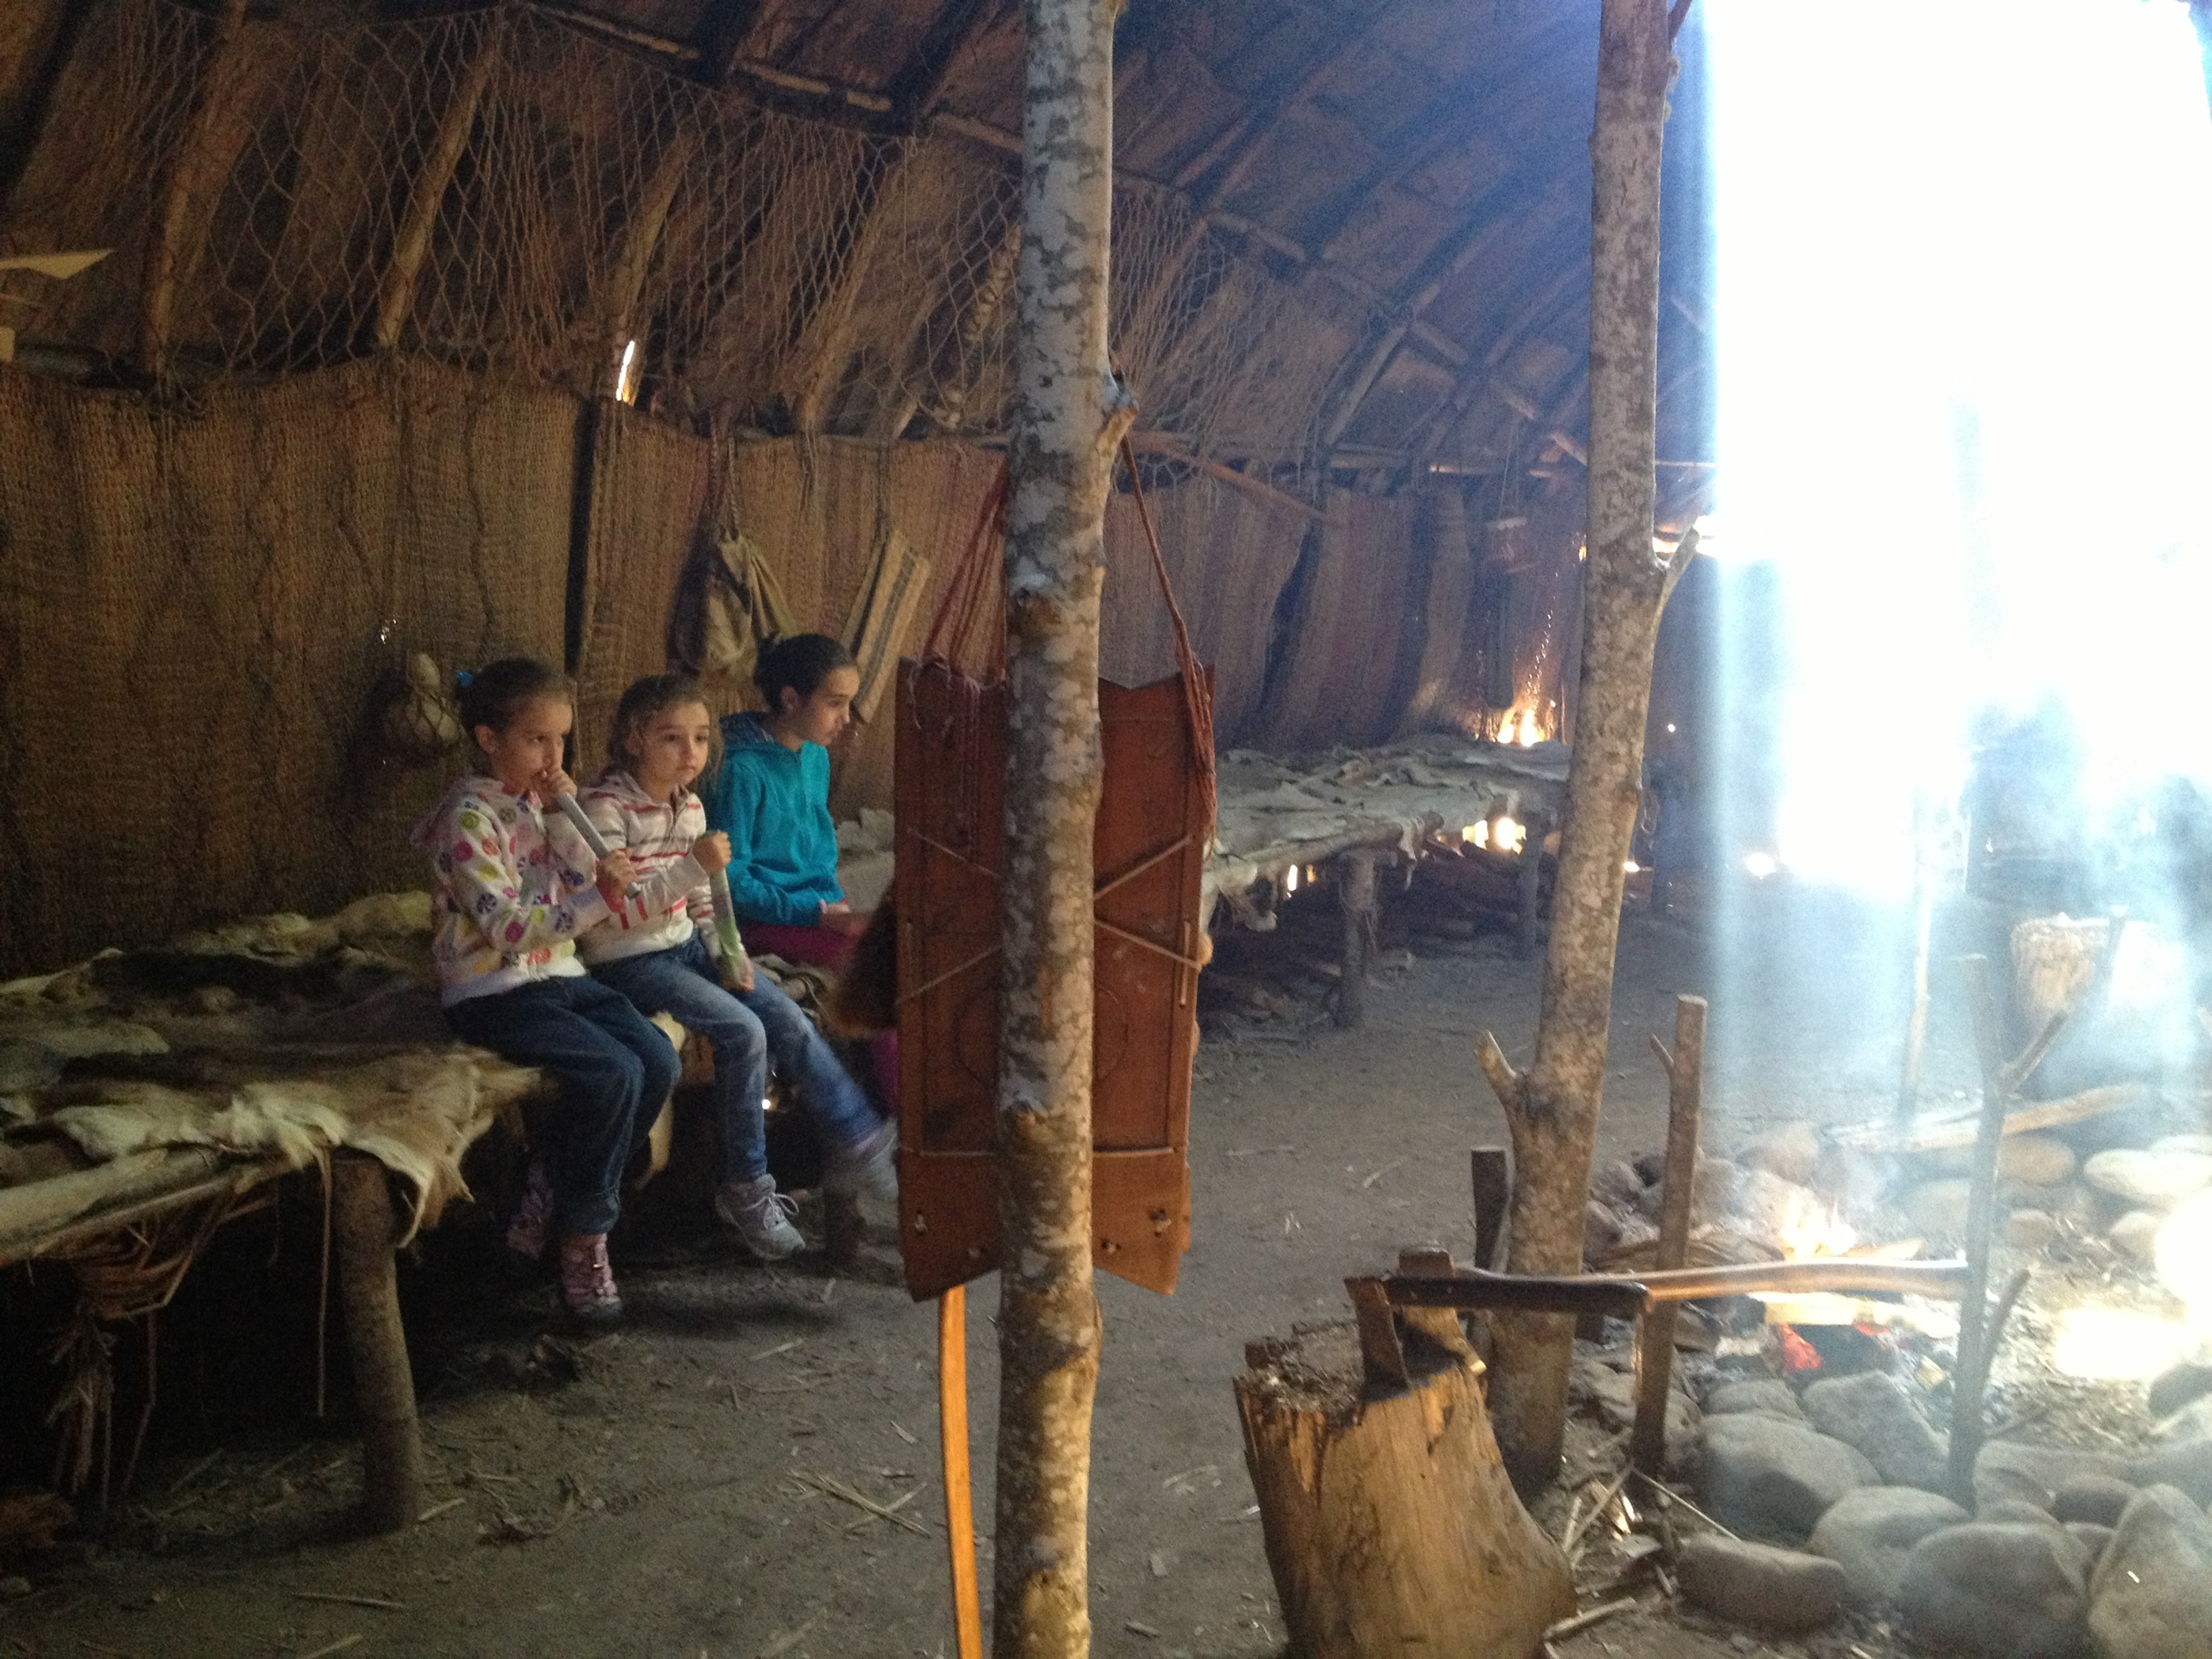 The girls inside a Wampanoag home learning from a Wampanoag descendent of their way of life in the 1600s.